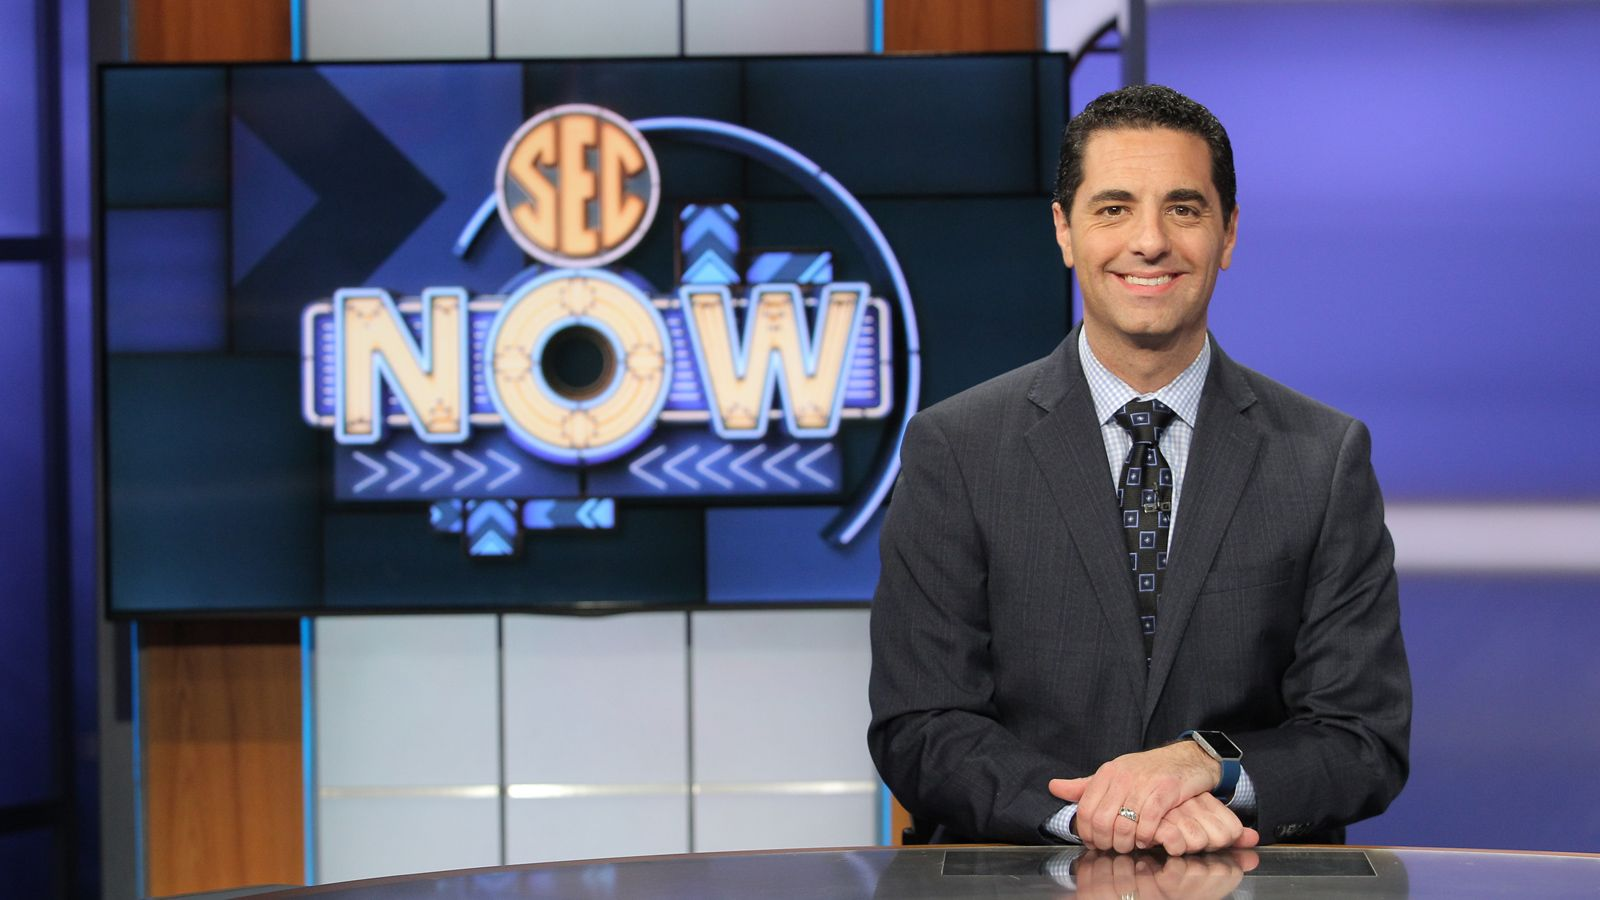 Dari Nowkhah Signs Extension With Sec Network